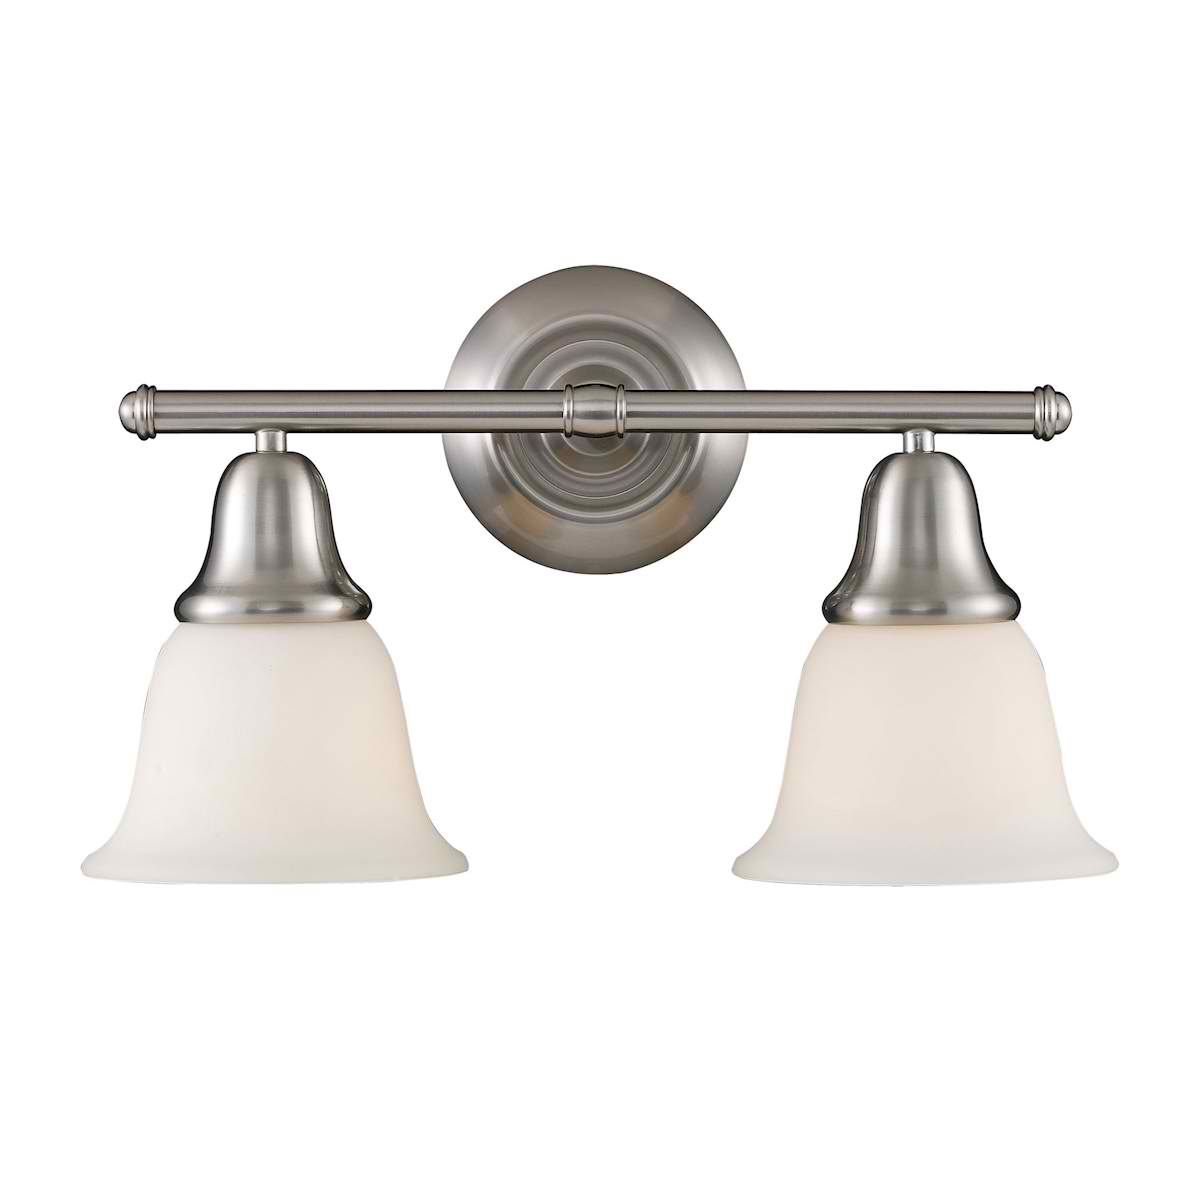 Berwick 2-Light Sconce in Brushed Nickel